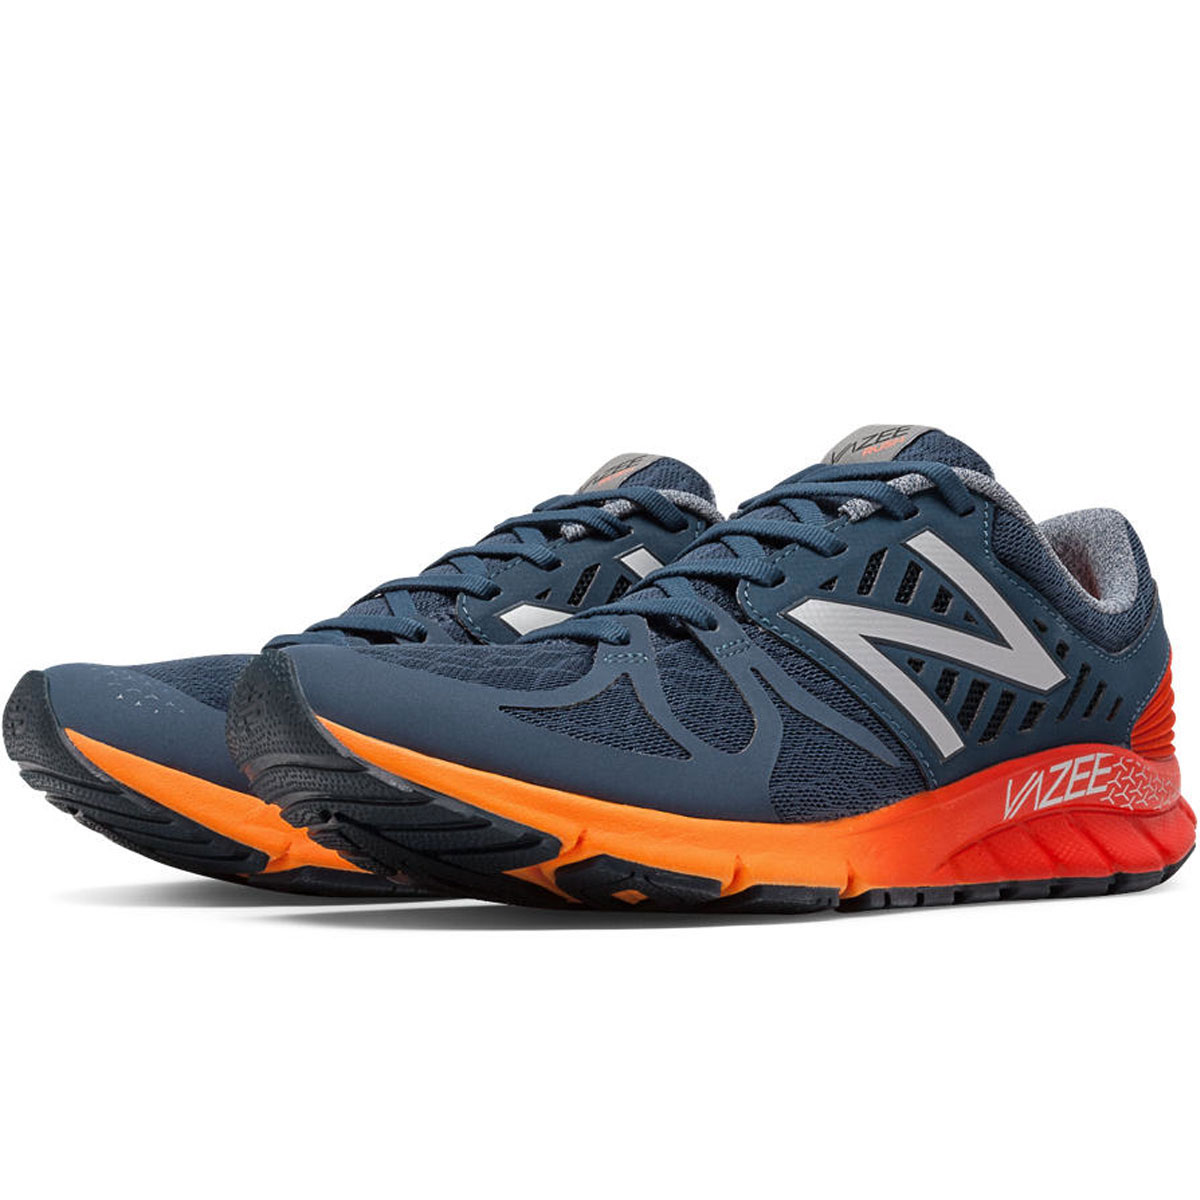 New balance vazee rush v2 mens running shoes black multi online - New Balance Mens Rushv1 Vazee Rush Running Shoes